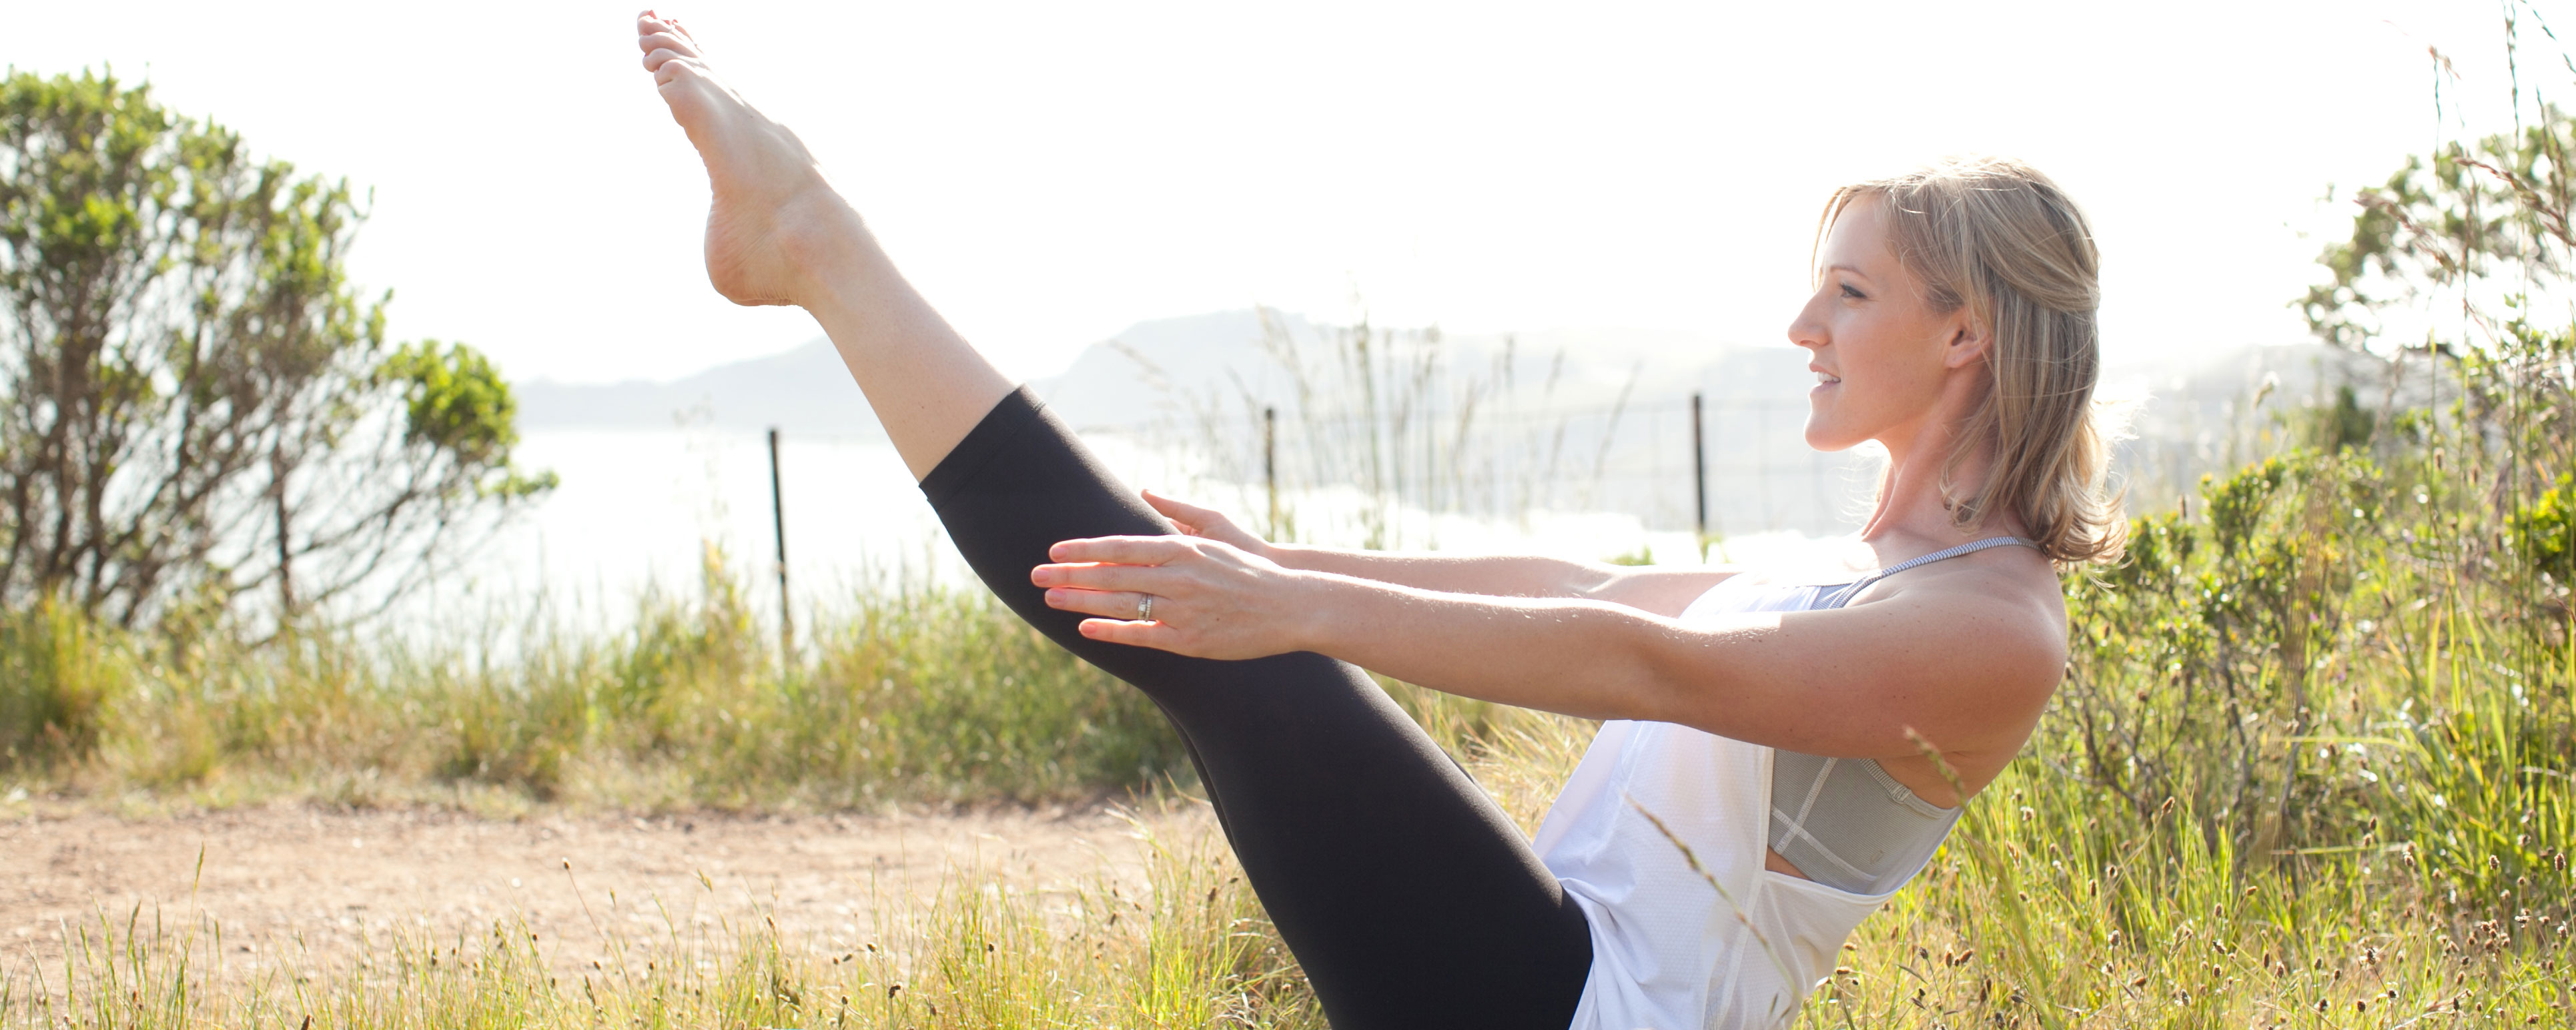 Pilates: The What, Why, and How